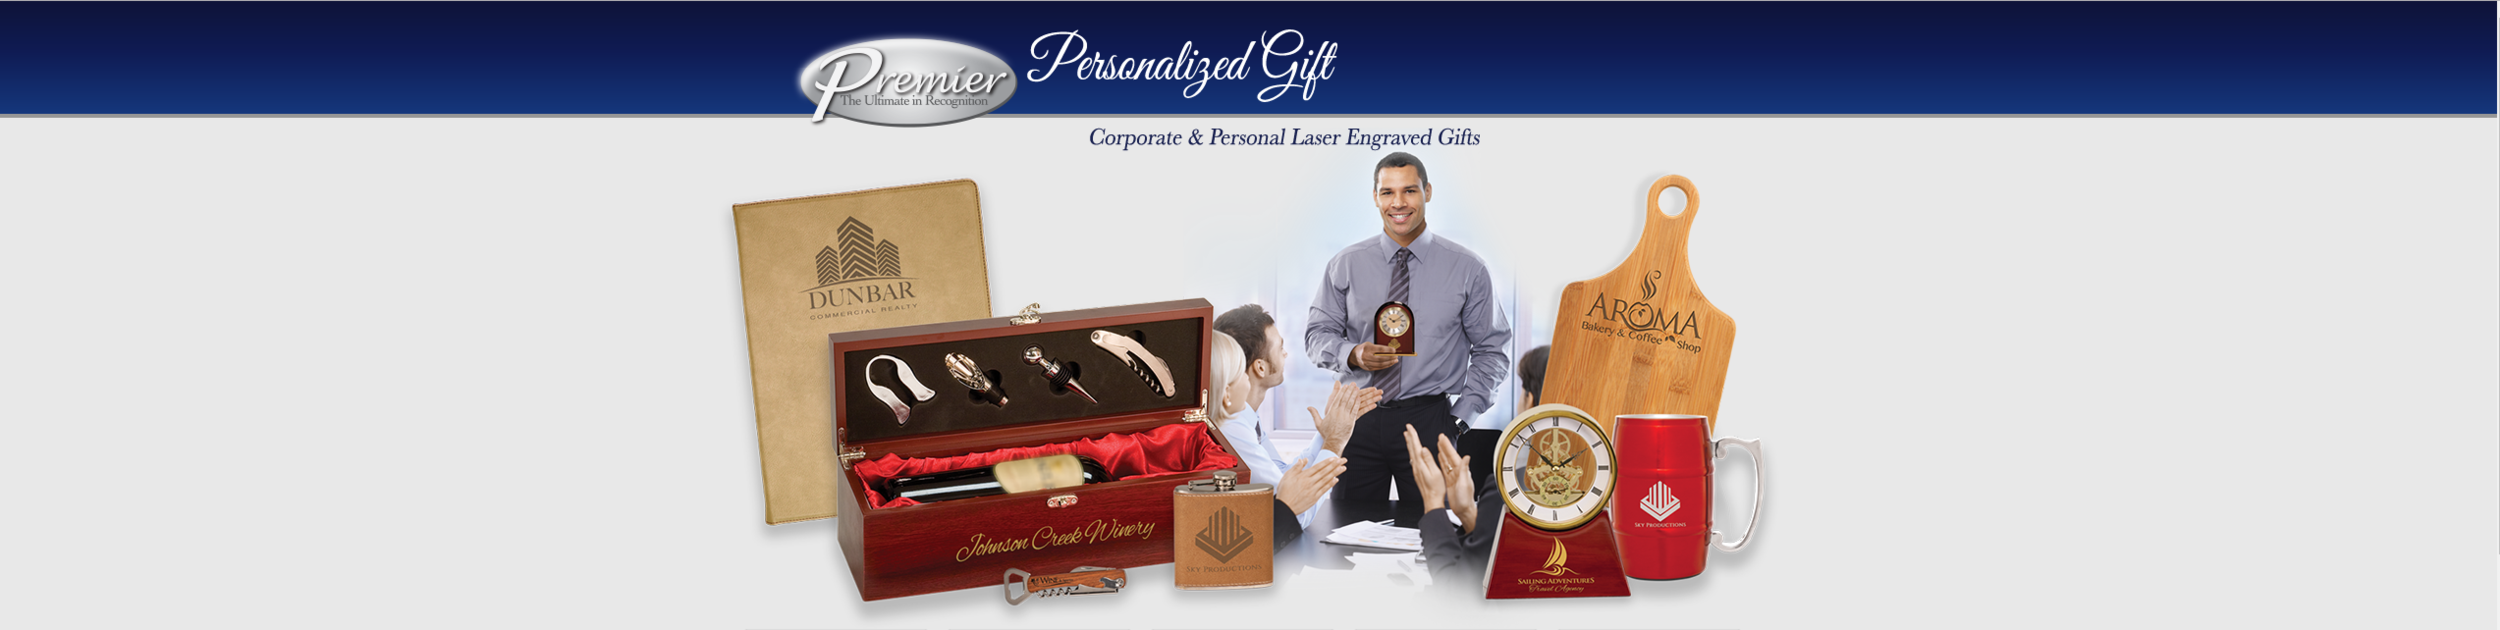 Premier personalized gift.PNG